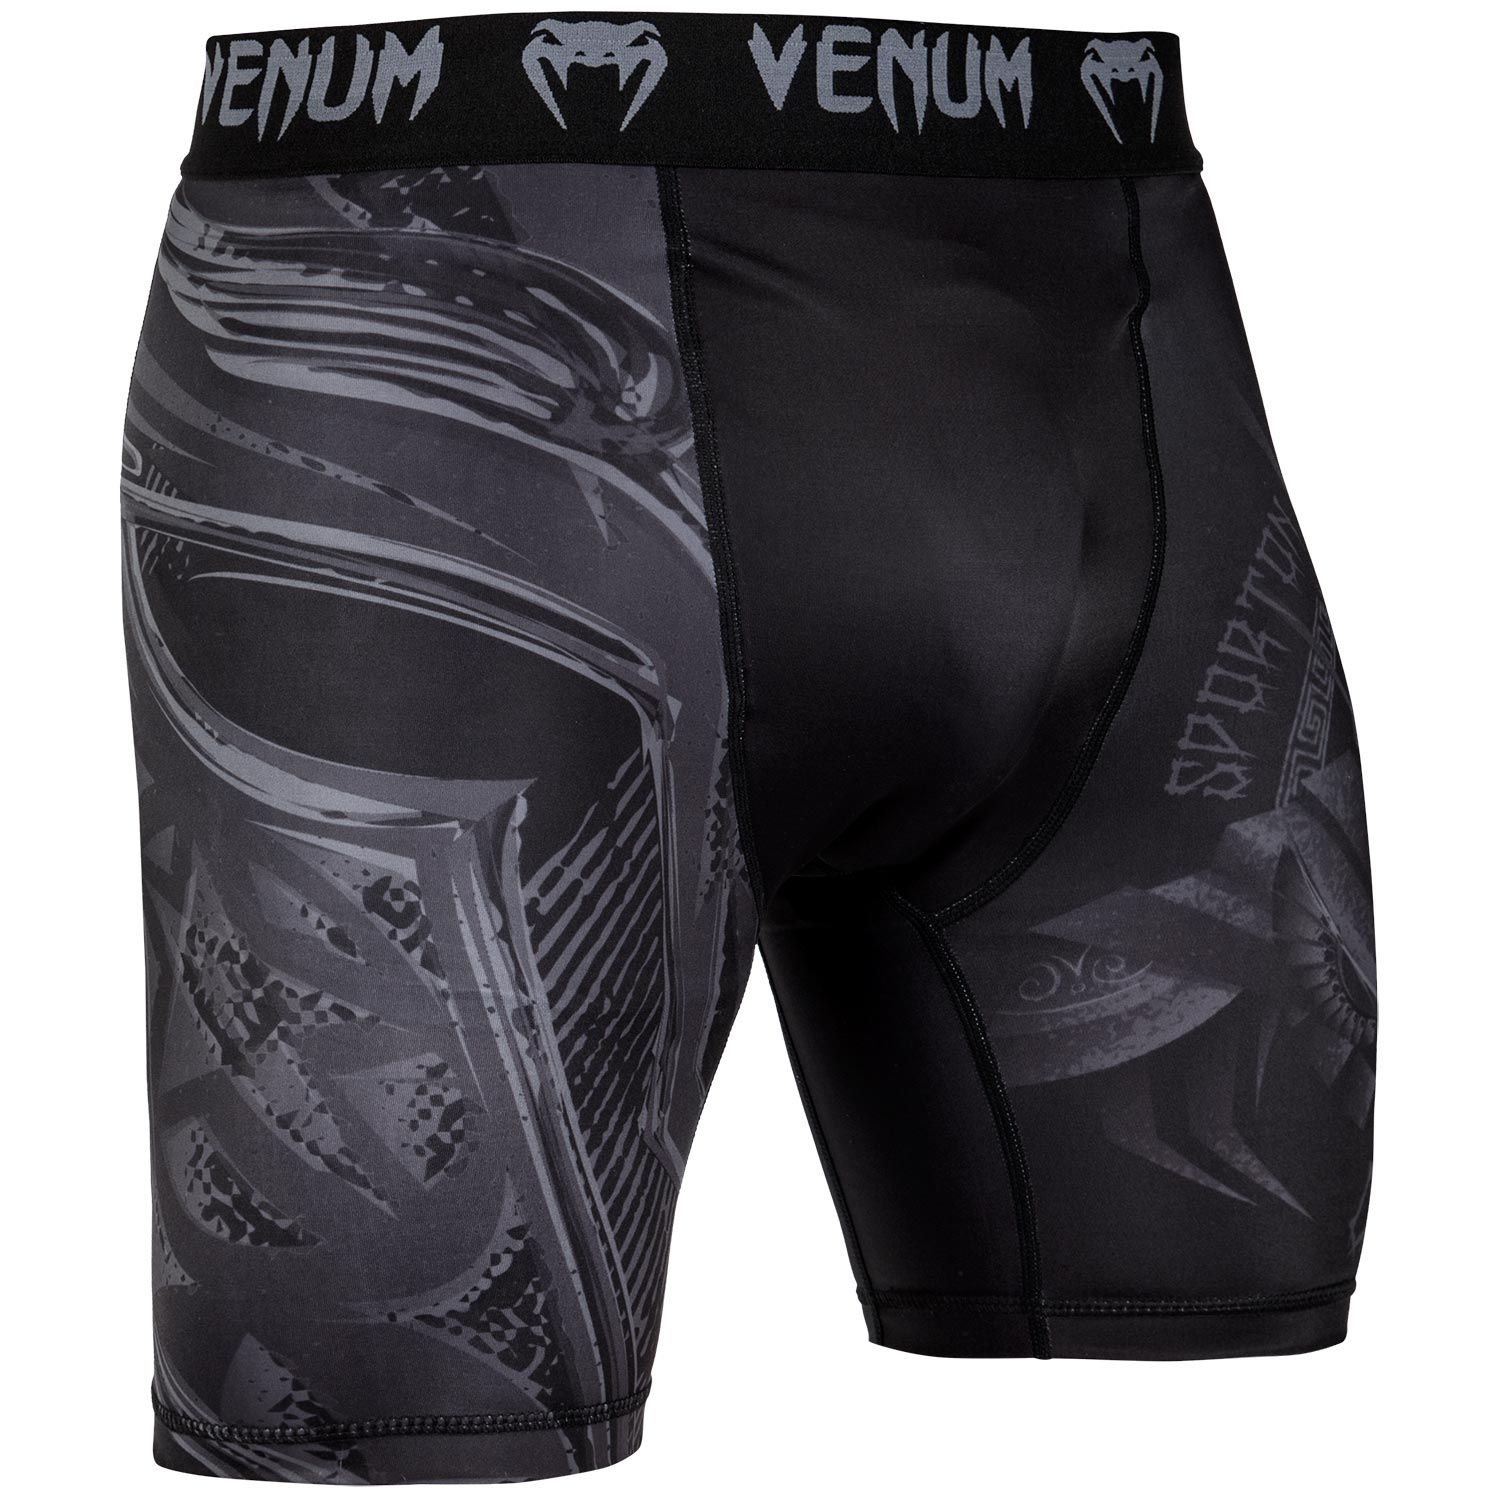 Short de compression Venum Gladiator 3.0 - Noir/Noir - Exclusivité